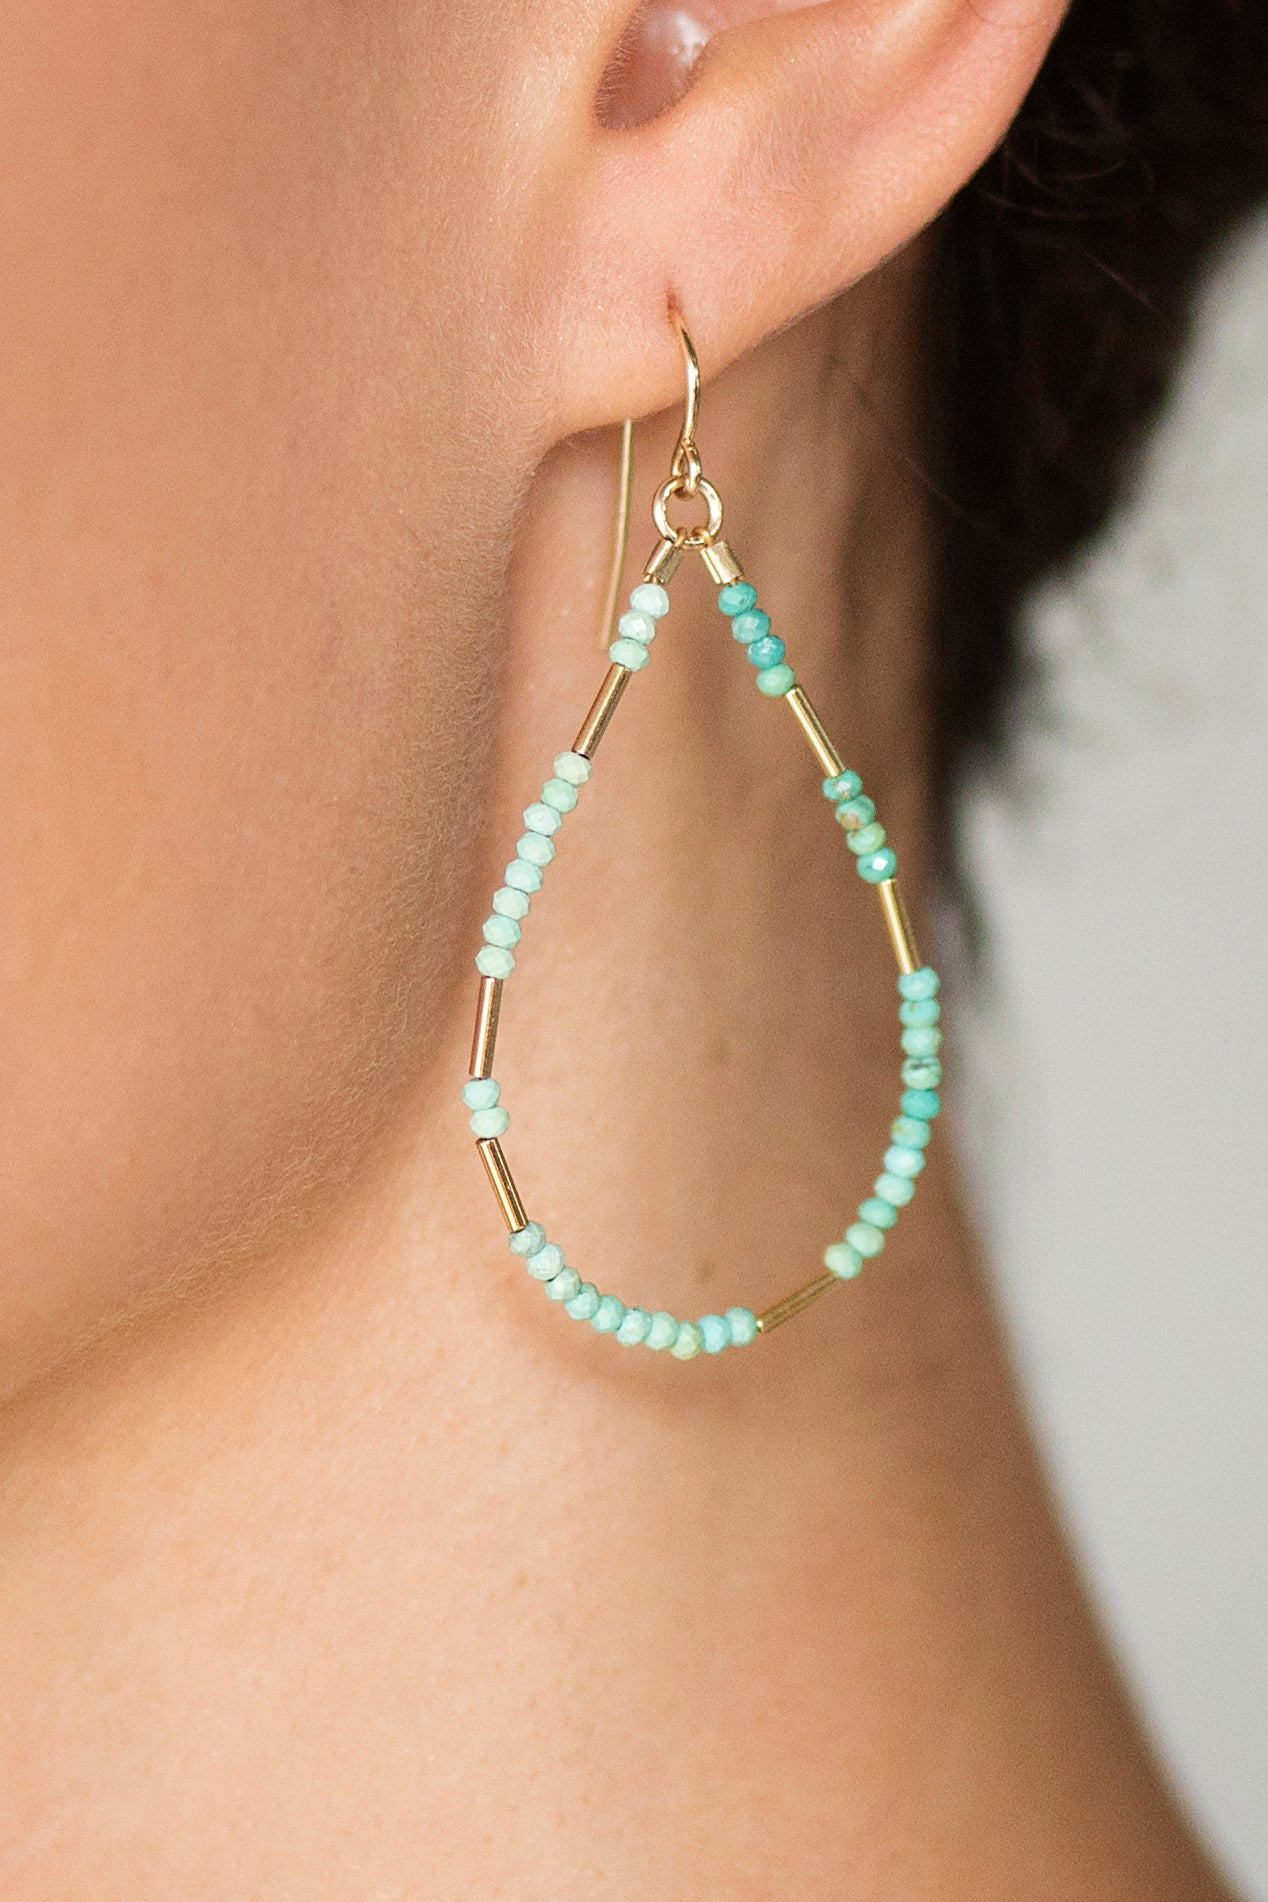 Turquoise Liquid Gold Hoops